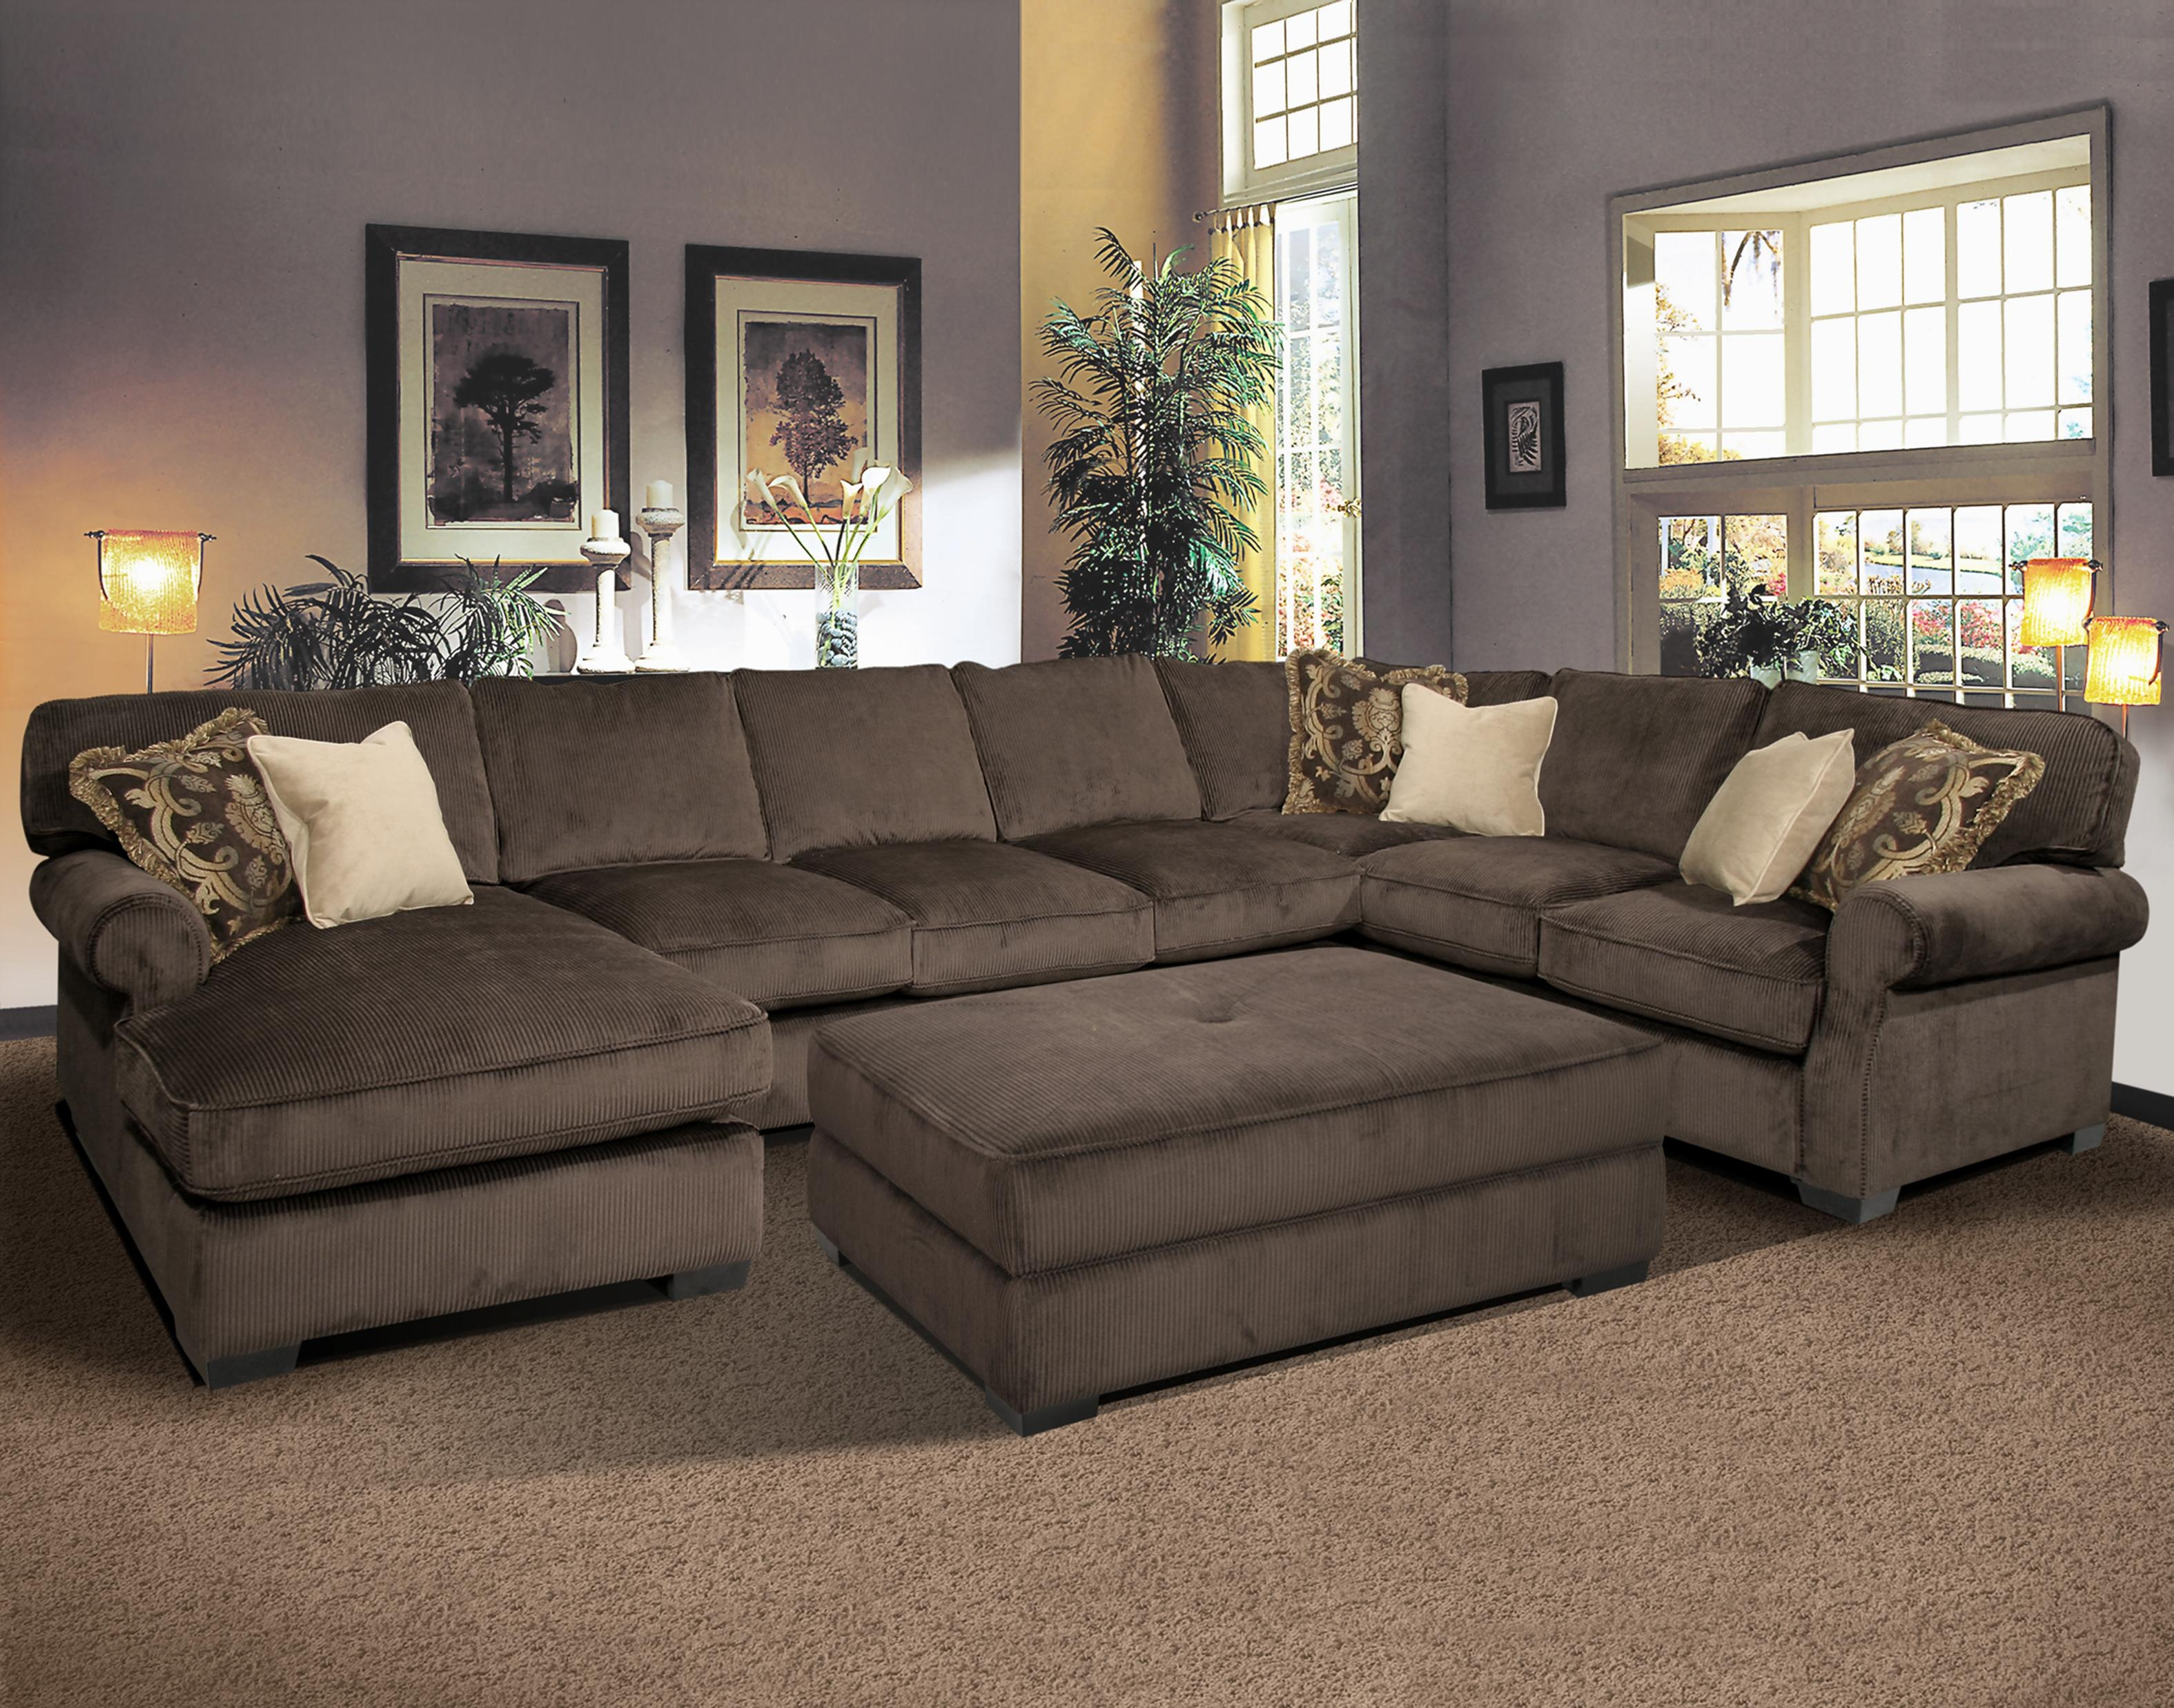 Huge Sectional Sofas Best Home Furniture Ideas For Extra Large Sectional Sofas (#8 of 12)